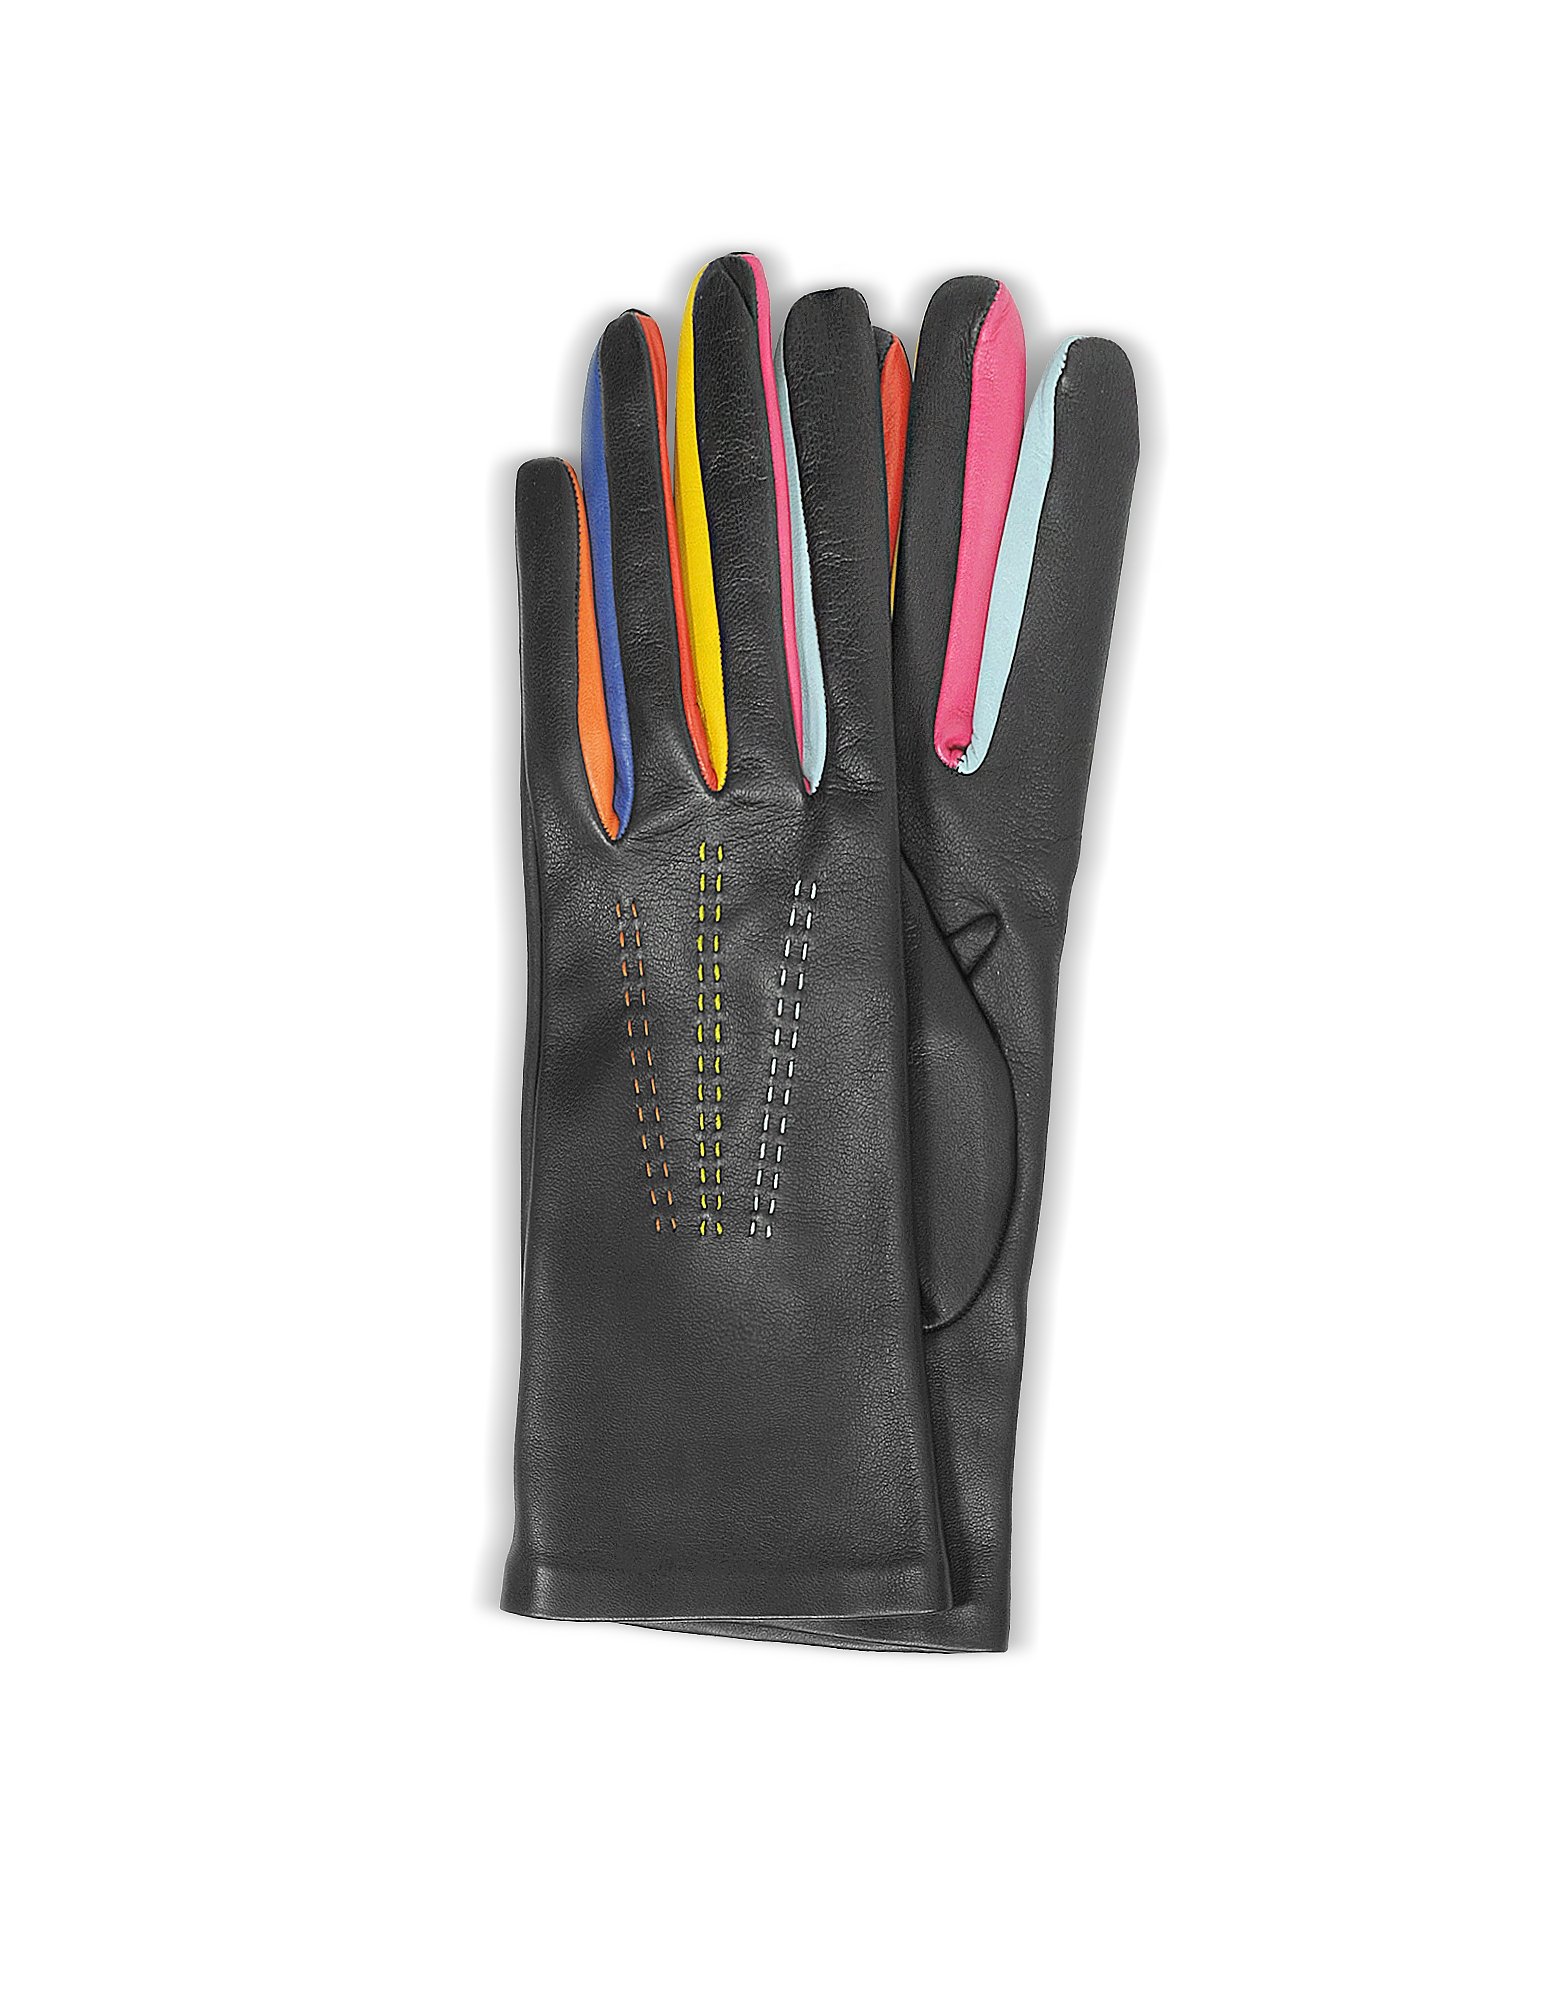 Forzieri Women's Gloves, Arlecchino Black Leather Women's Gloves w/Silk Lining